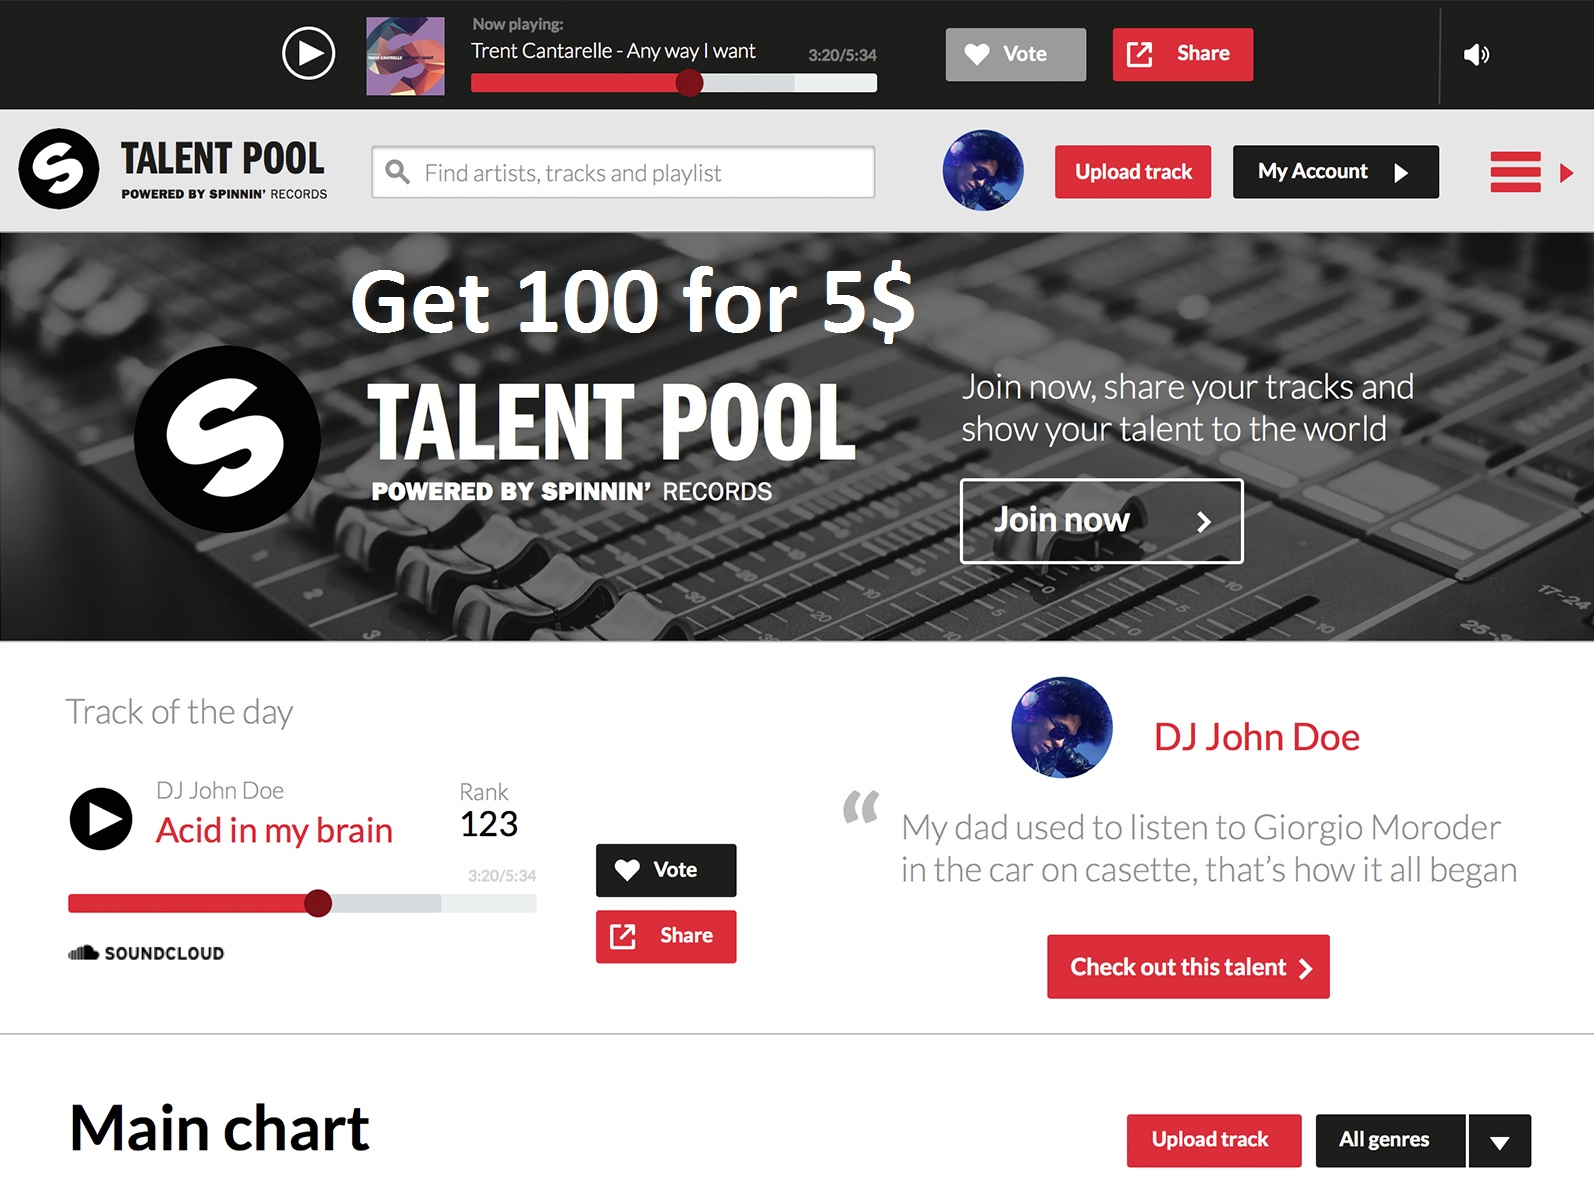 150 spinning Records Talent pool votes for your contest